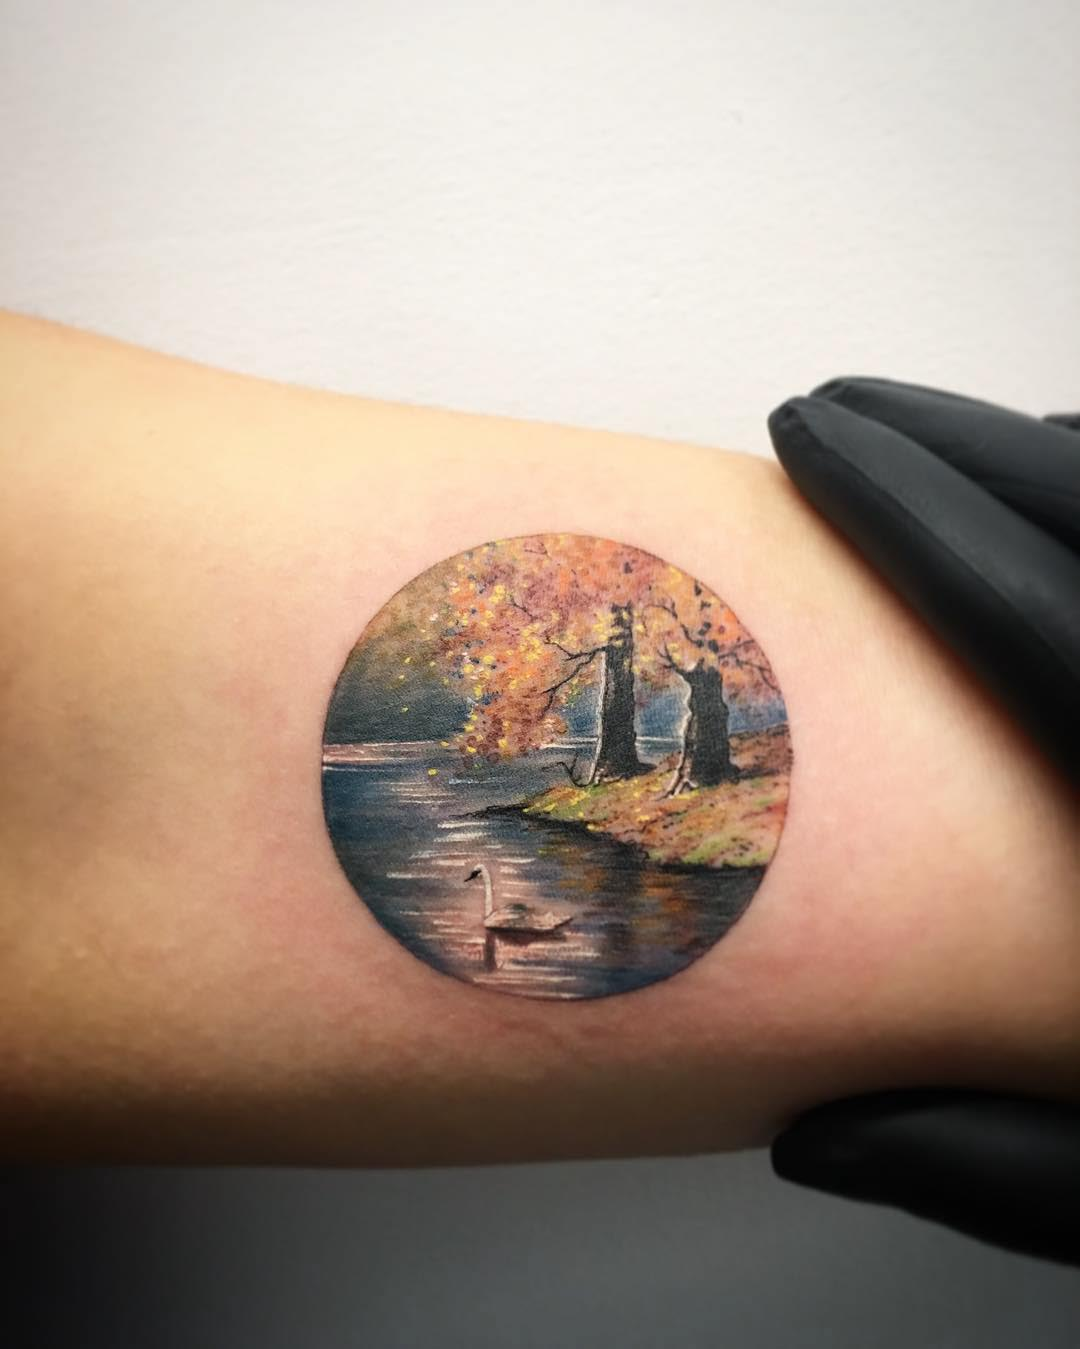 arm tattoo landscape circle-shaped